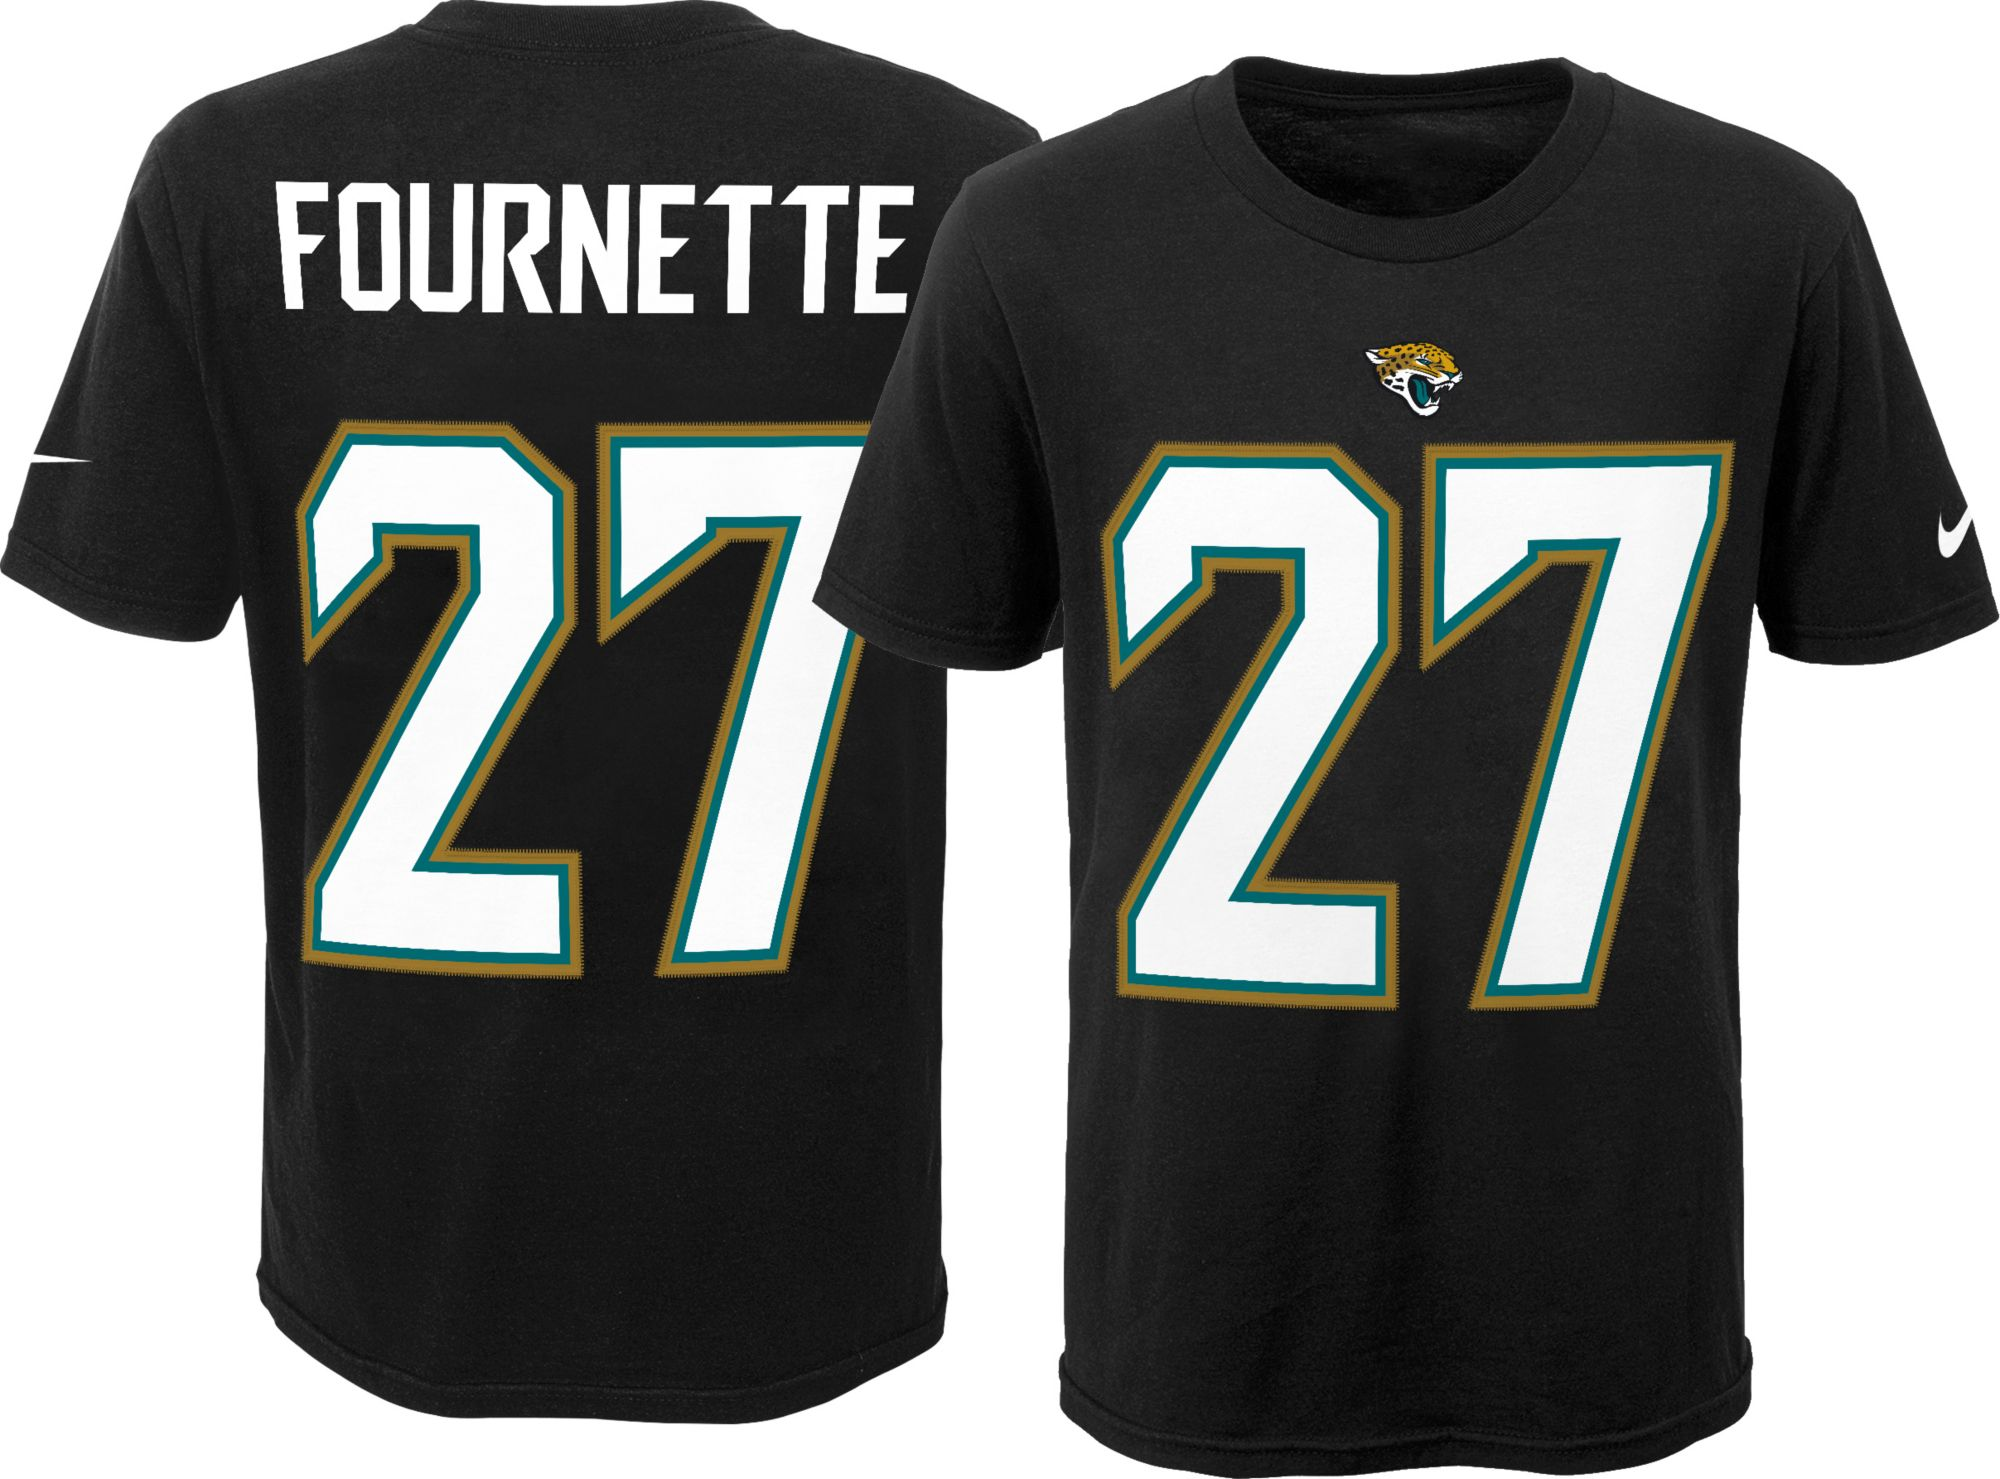 lowest price 65bbf 604d3 27 leonard fournette jersey nj